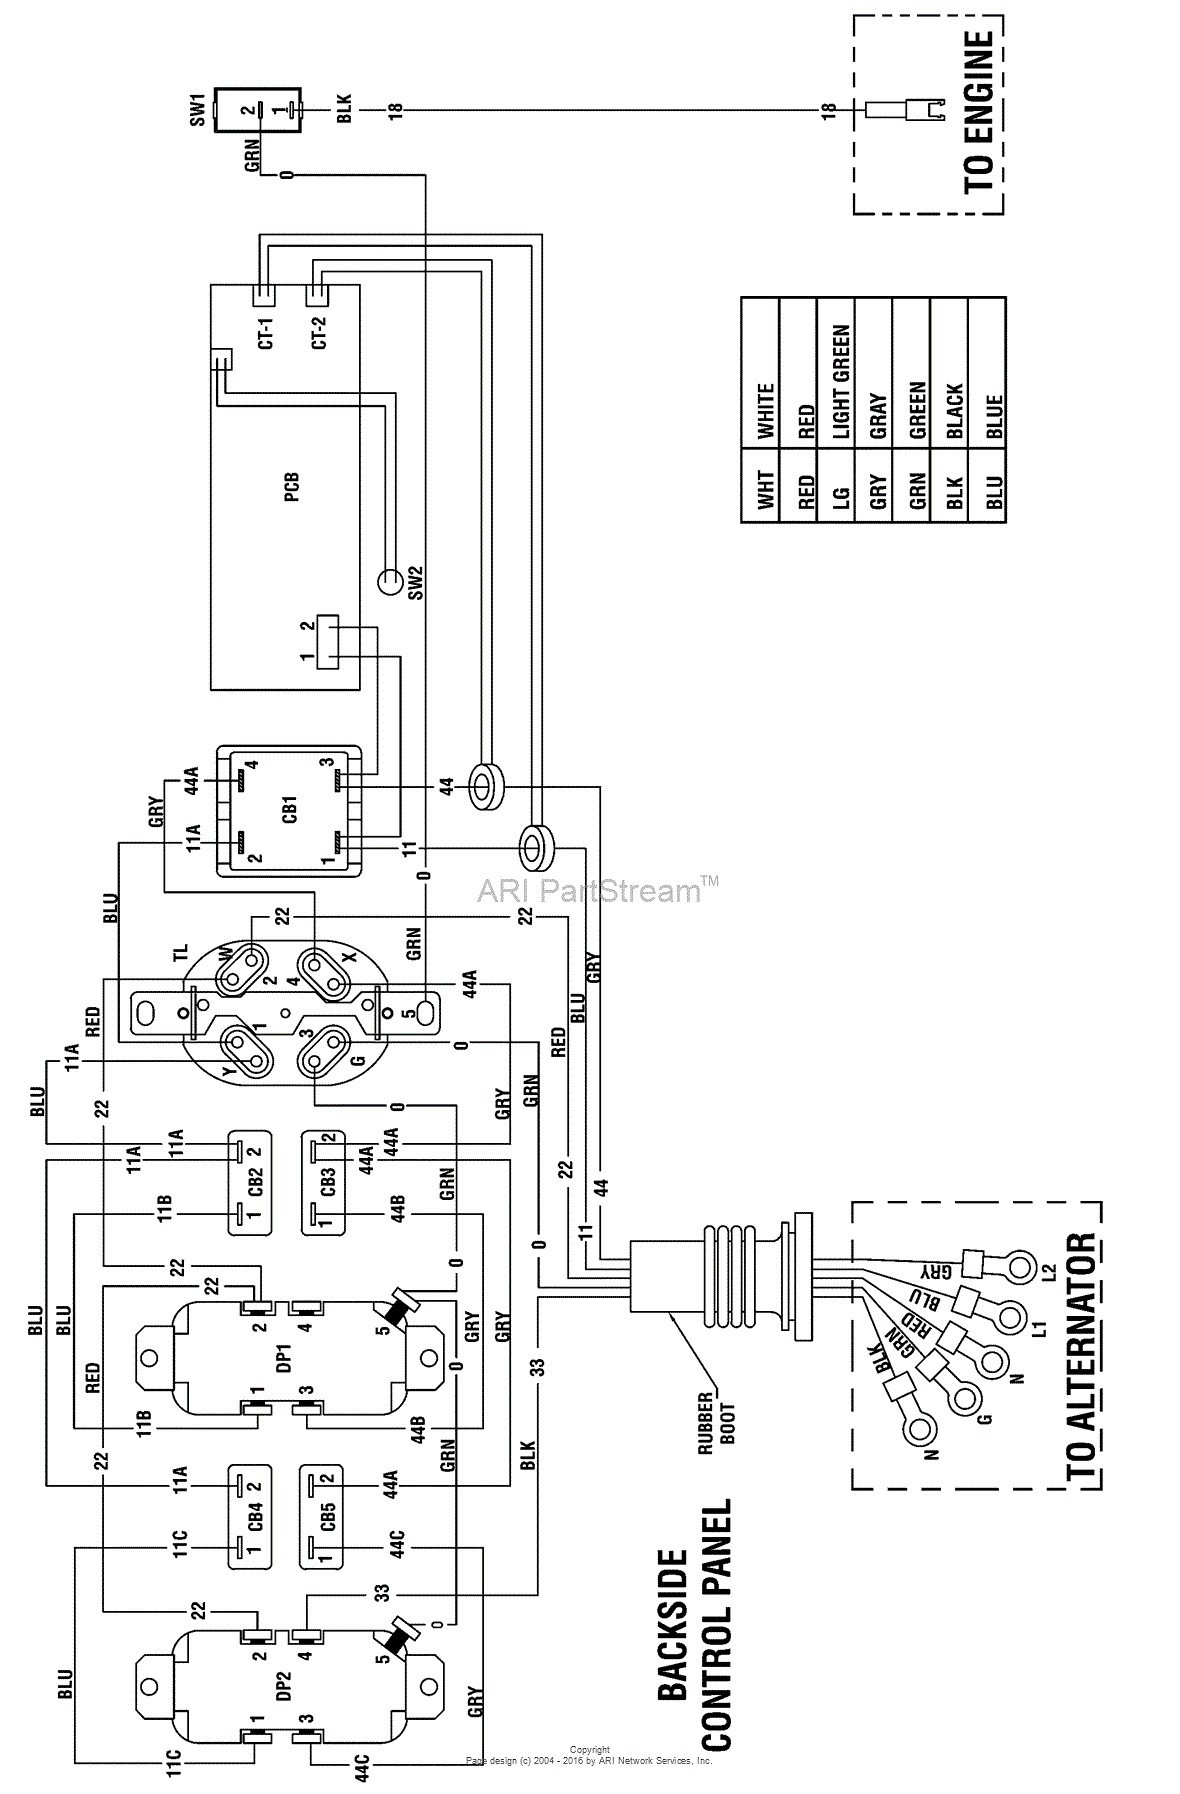 Briggs Stratton Wiring Diagram And Coil | Wiring Diagram - Briggs